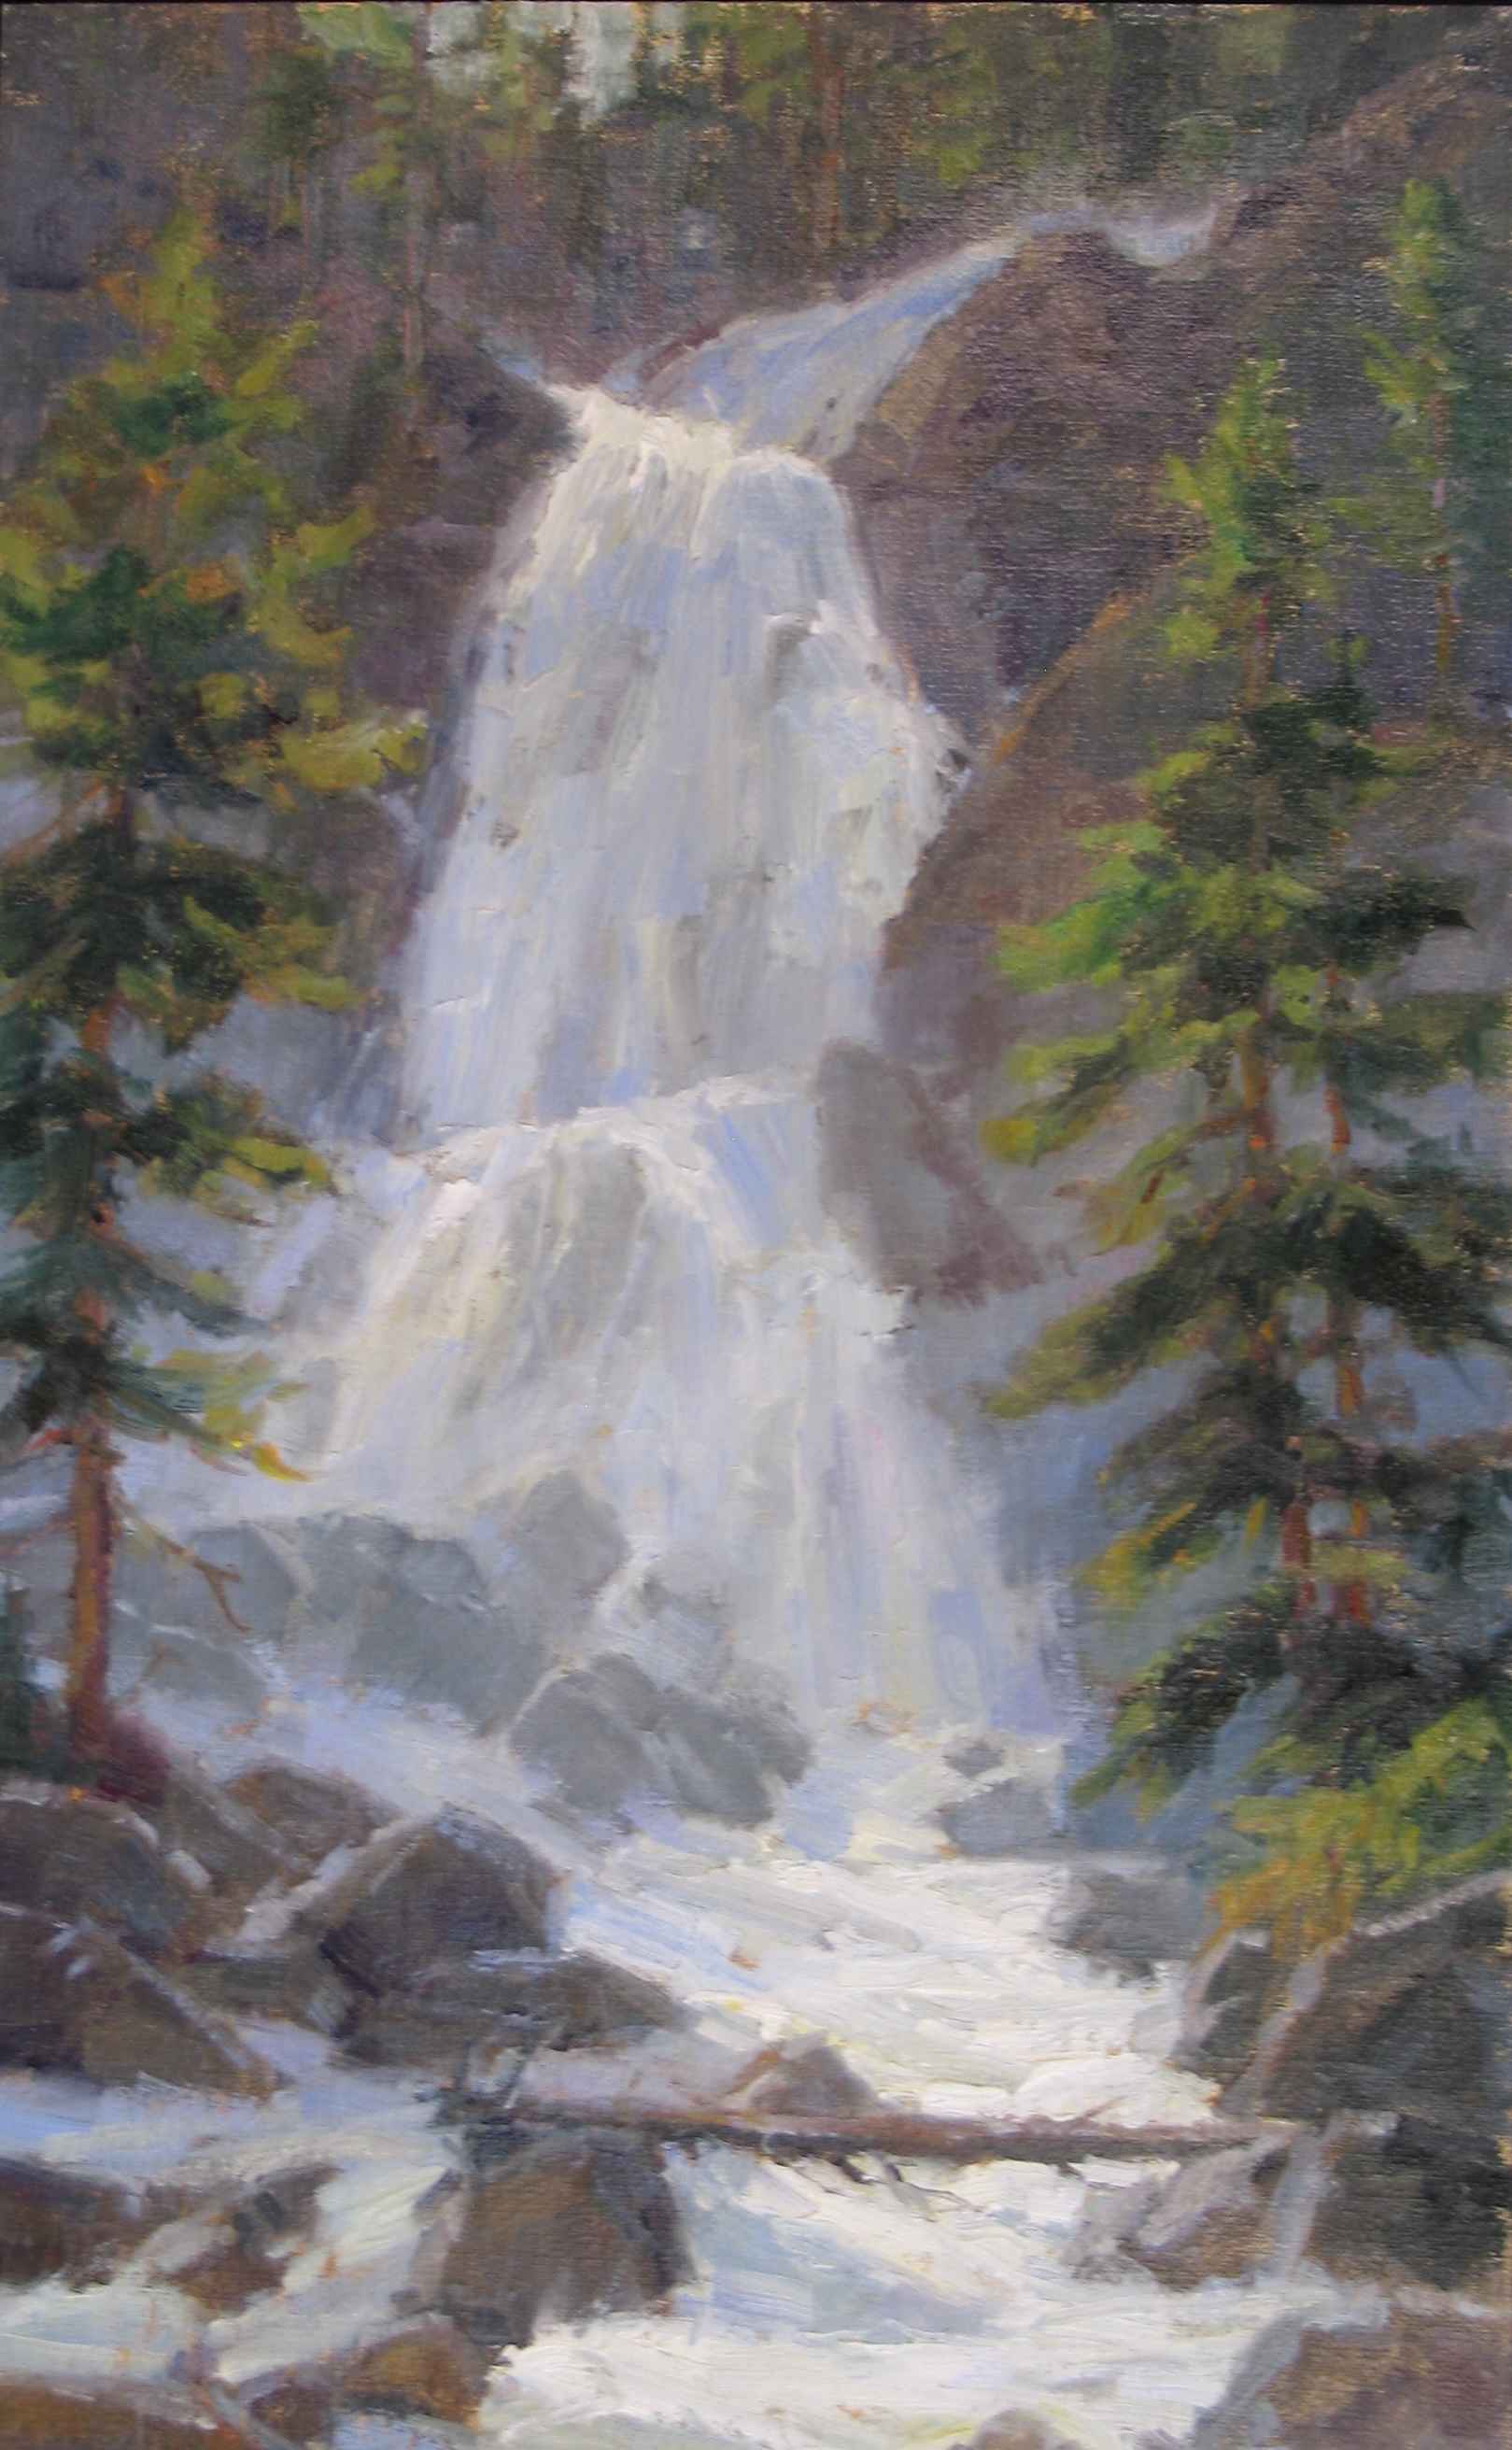 Christmas ornament sales of steamboat all things fulfilling for Fish creek falls